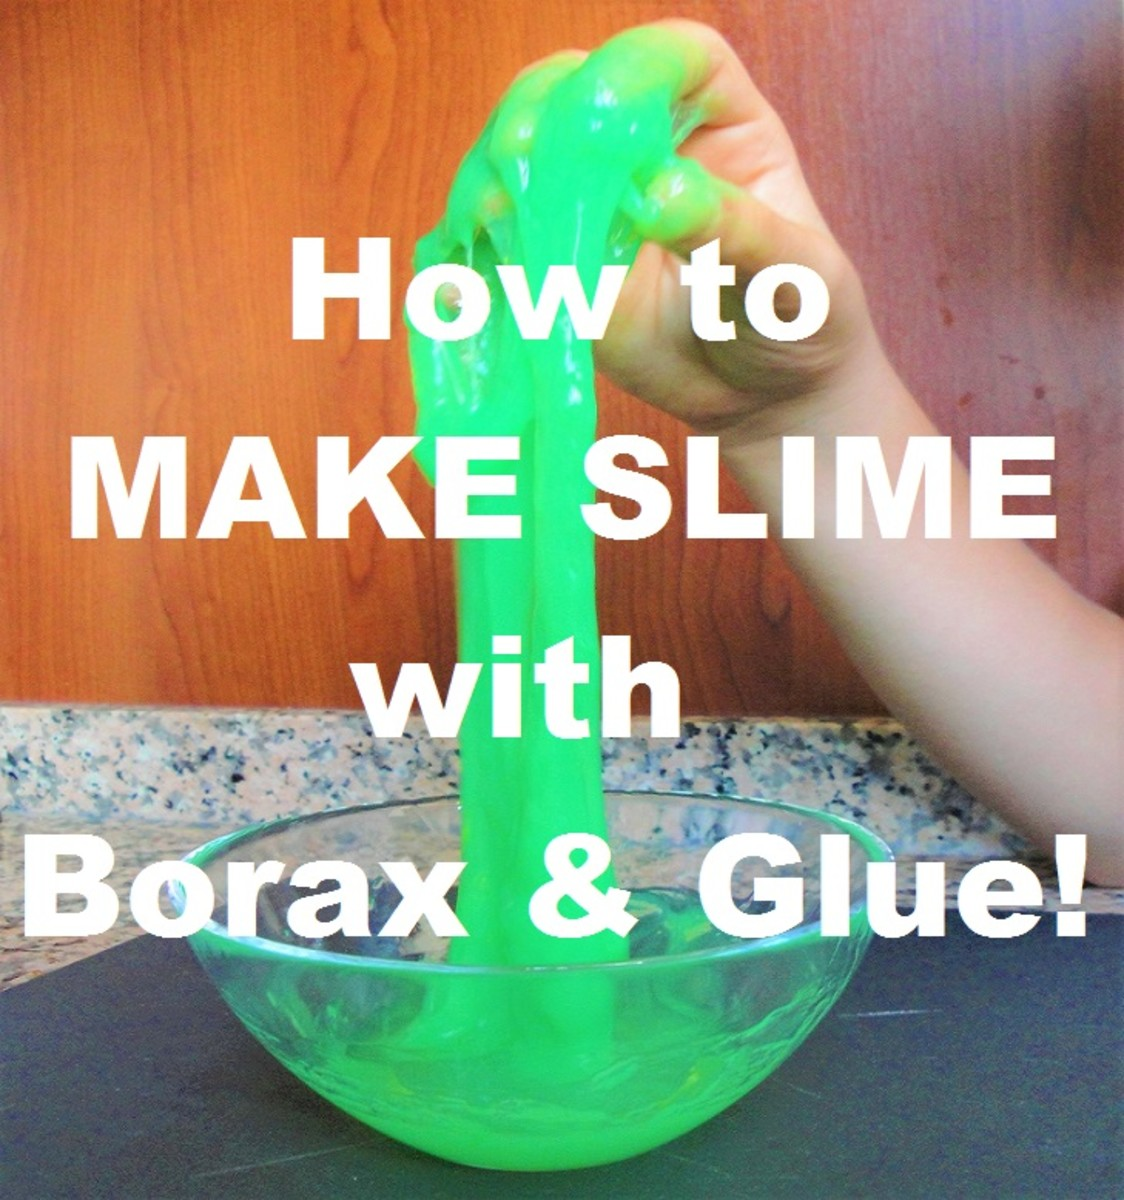 How to Make Slime With Borax and Glue